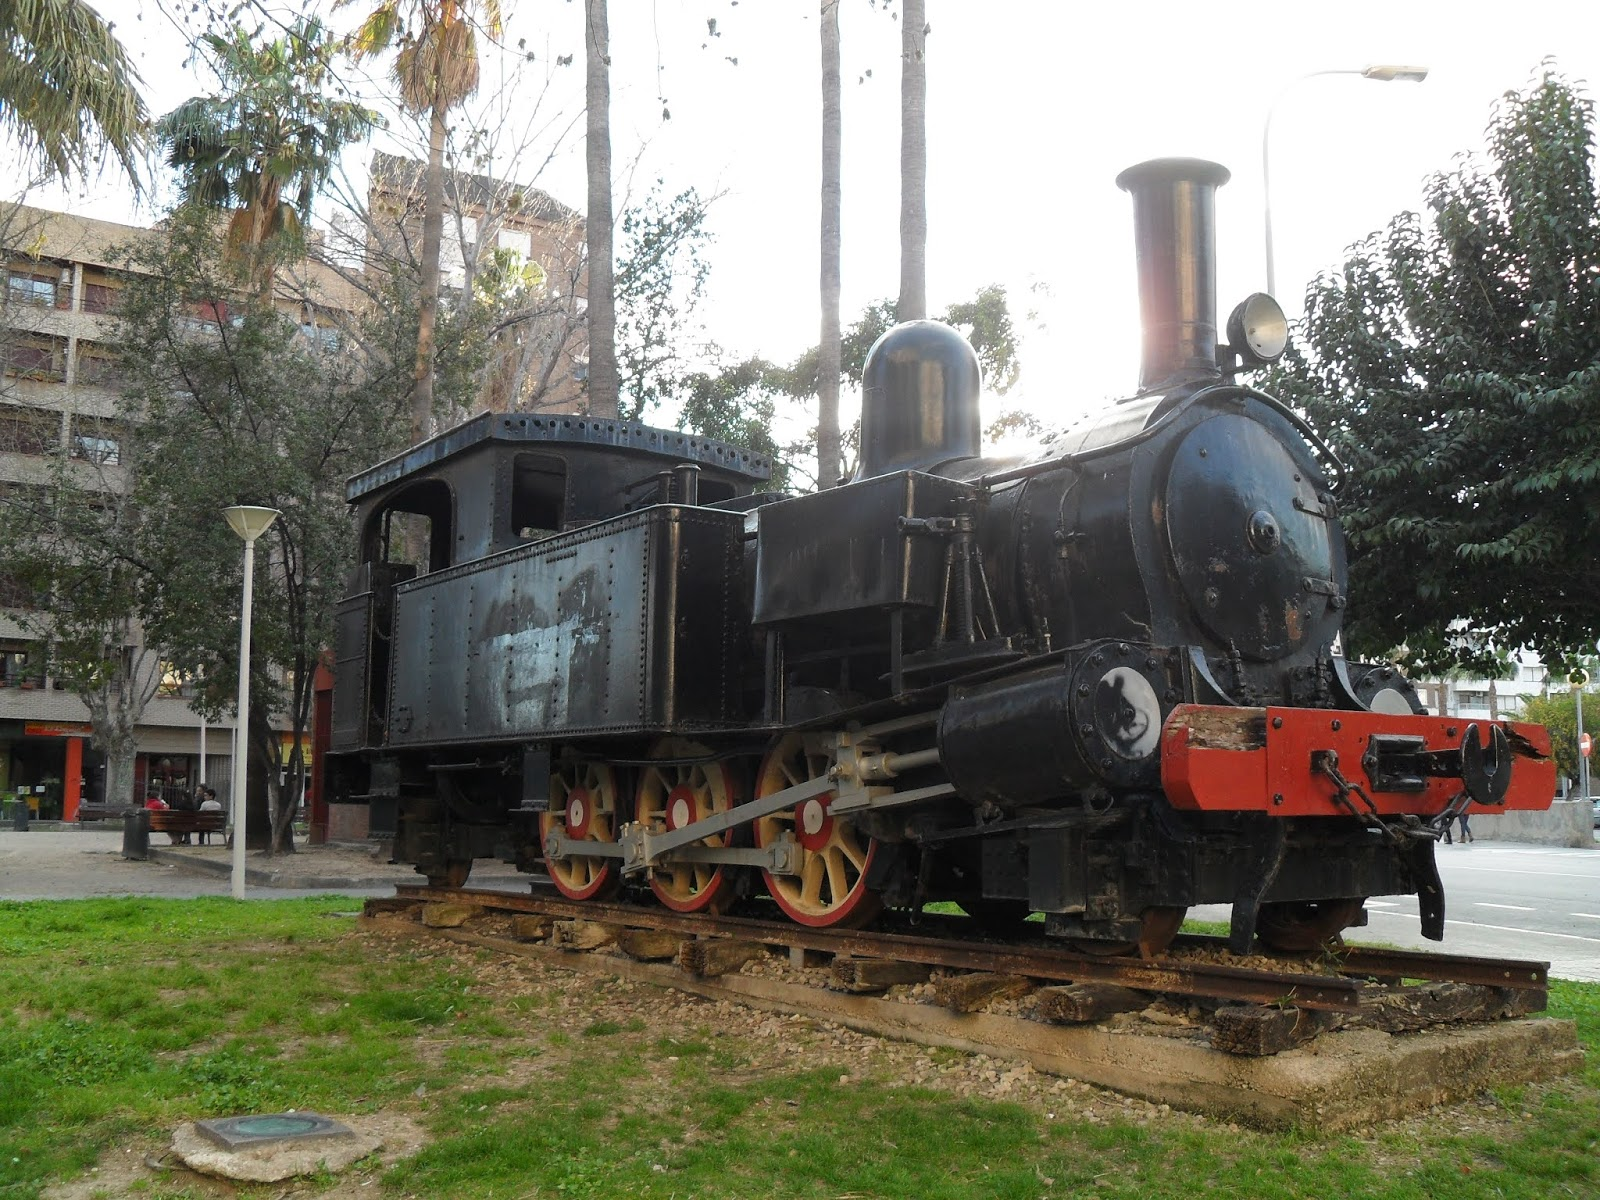 Steam train from Alcoy - Gandia rail way